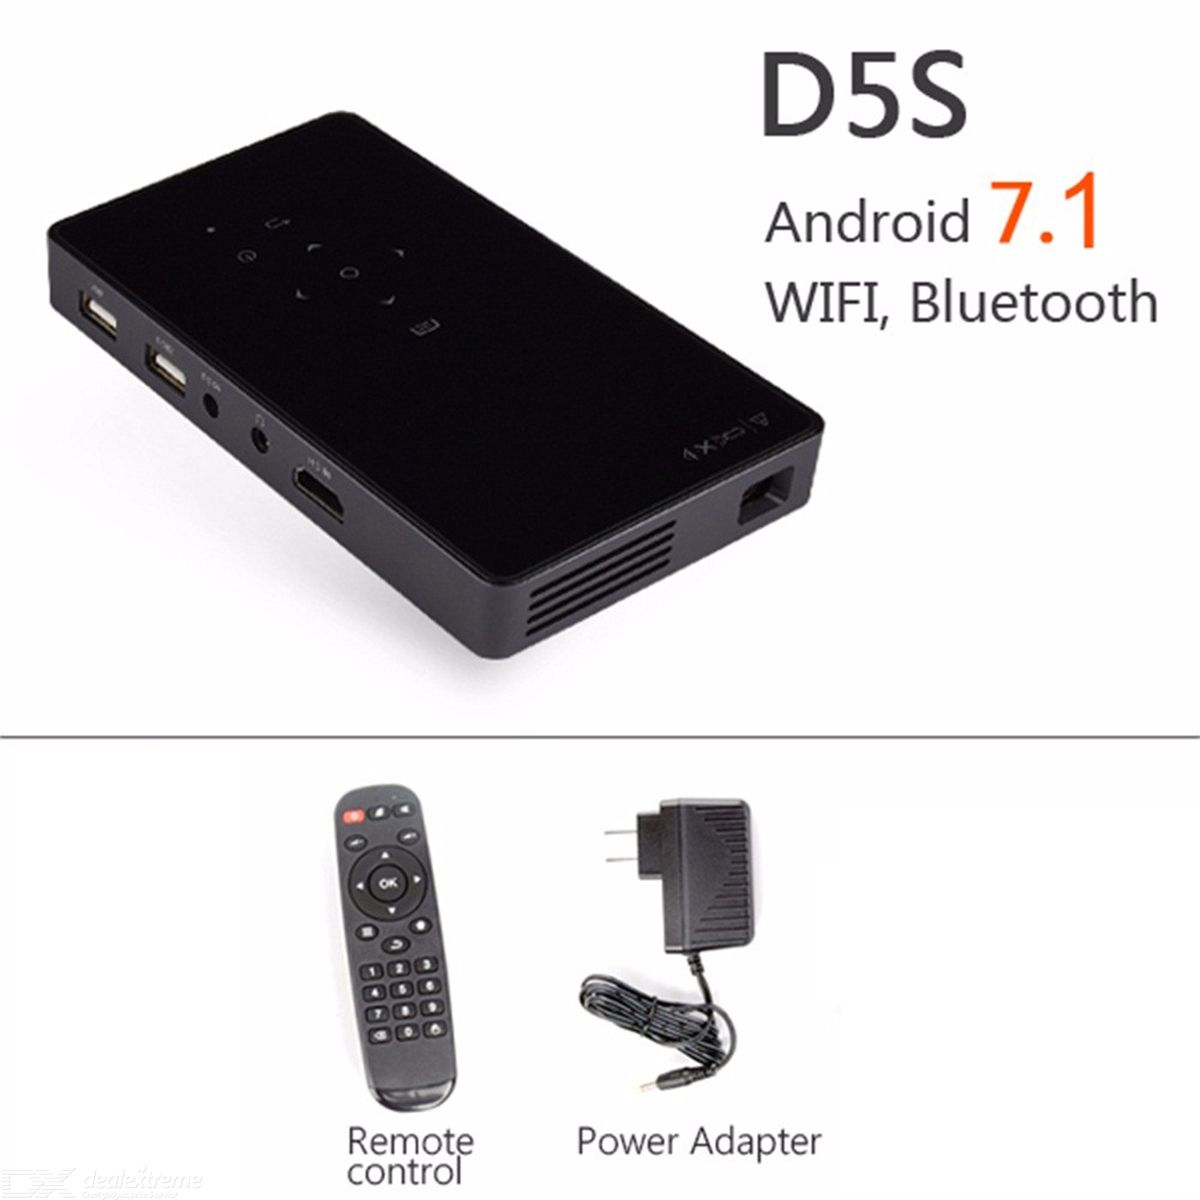 D5S Mini Portable Android 7.1 Projector Built-in Wi-Fi Bluetooth Mini Projector Portable Projector Home Cinema black